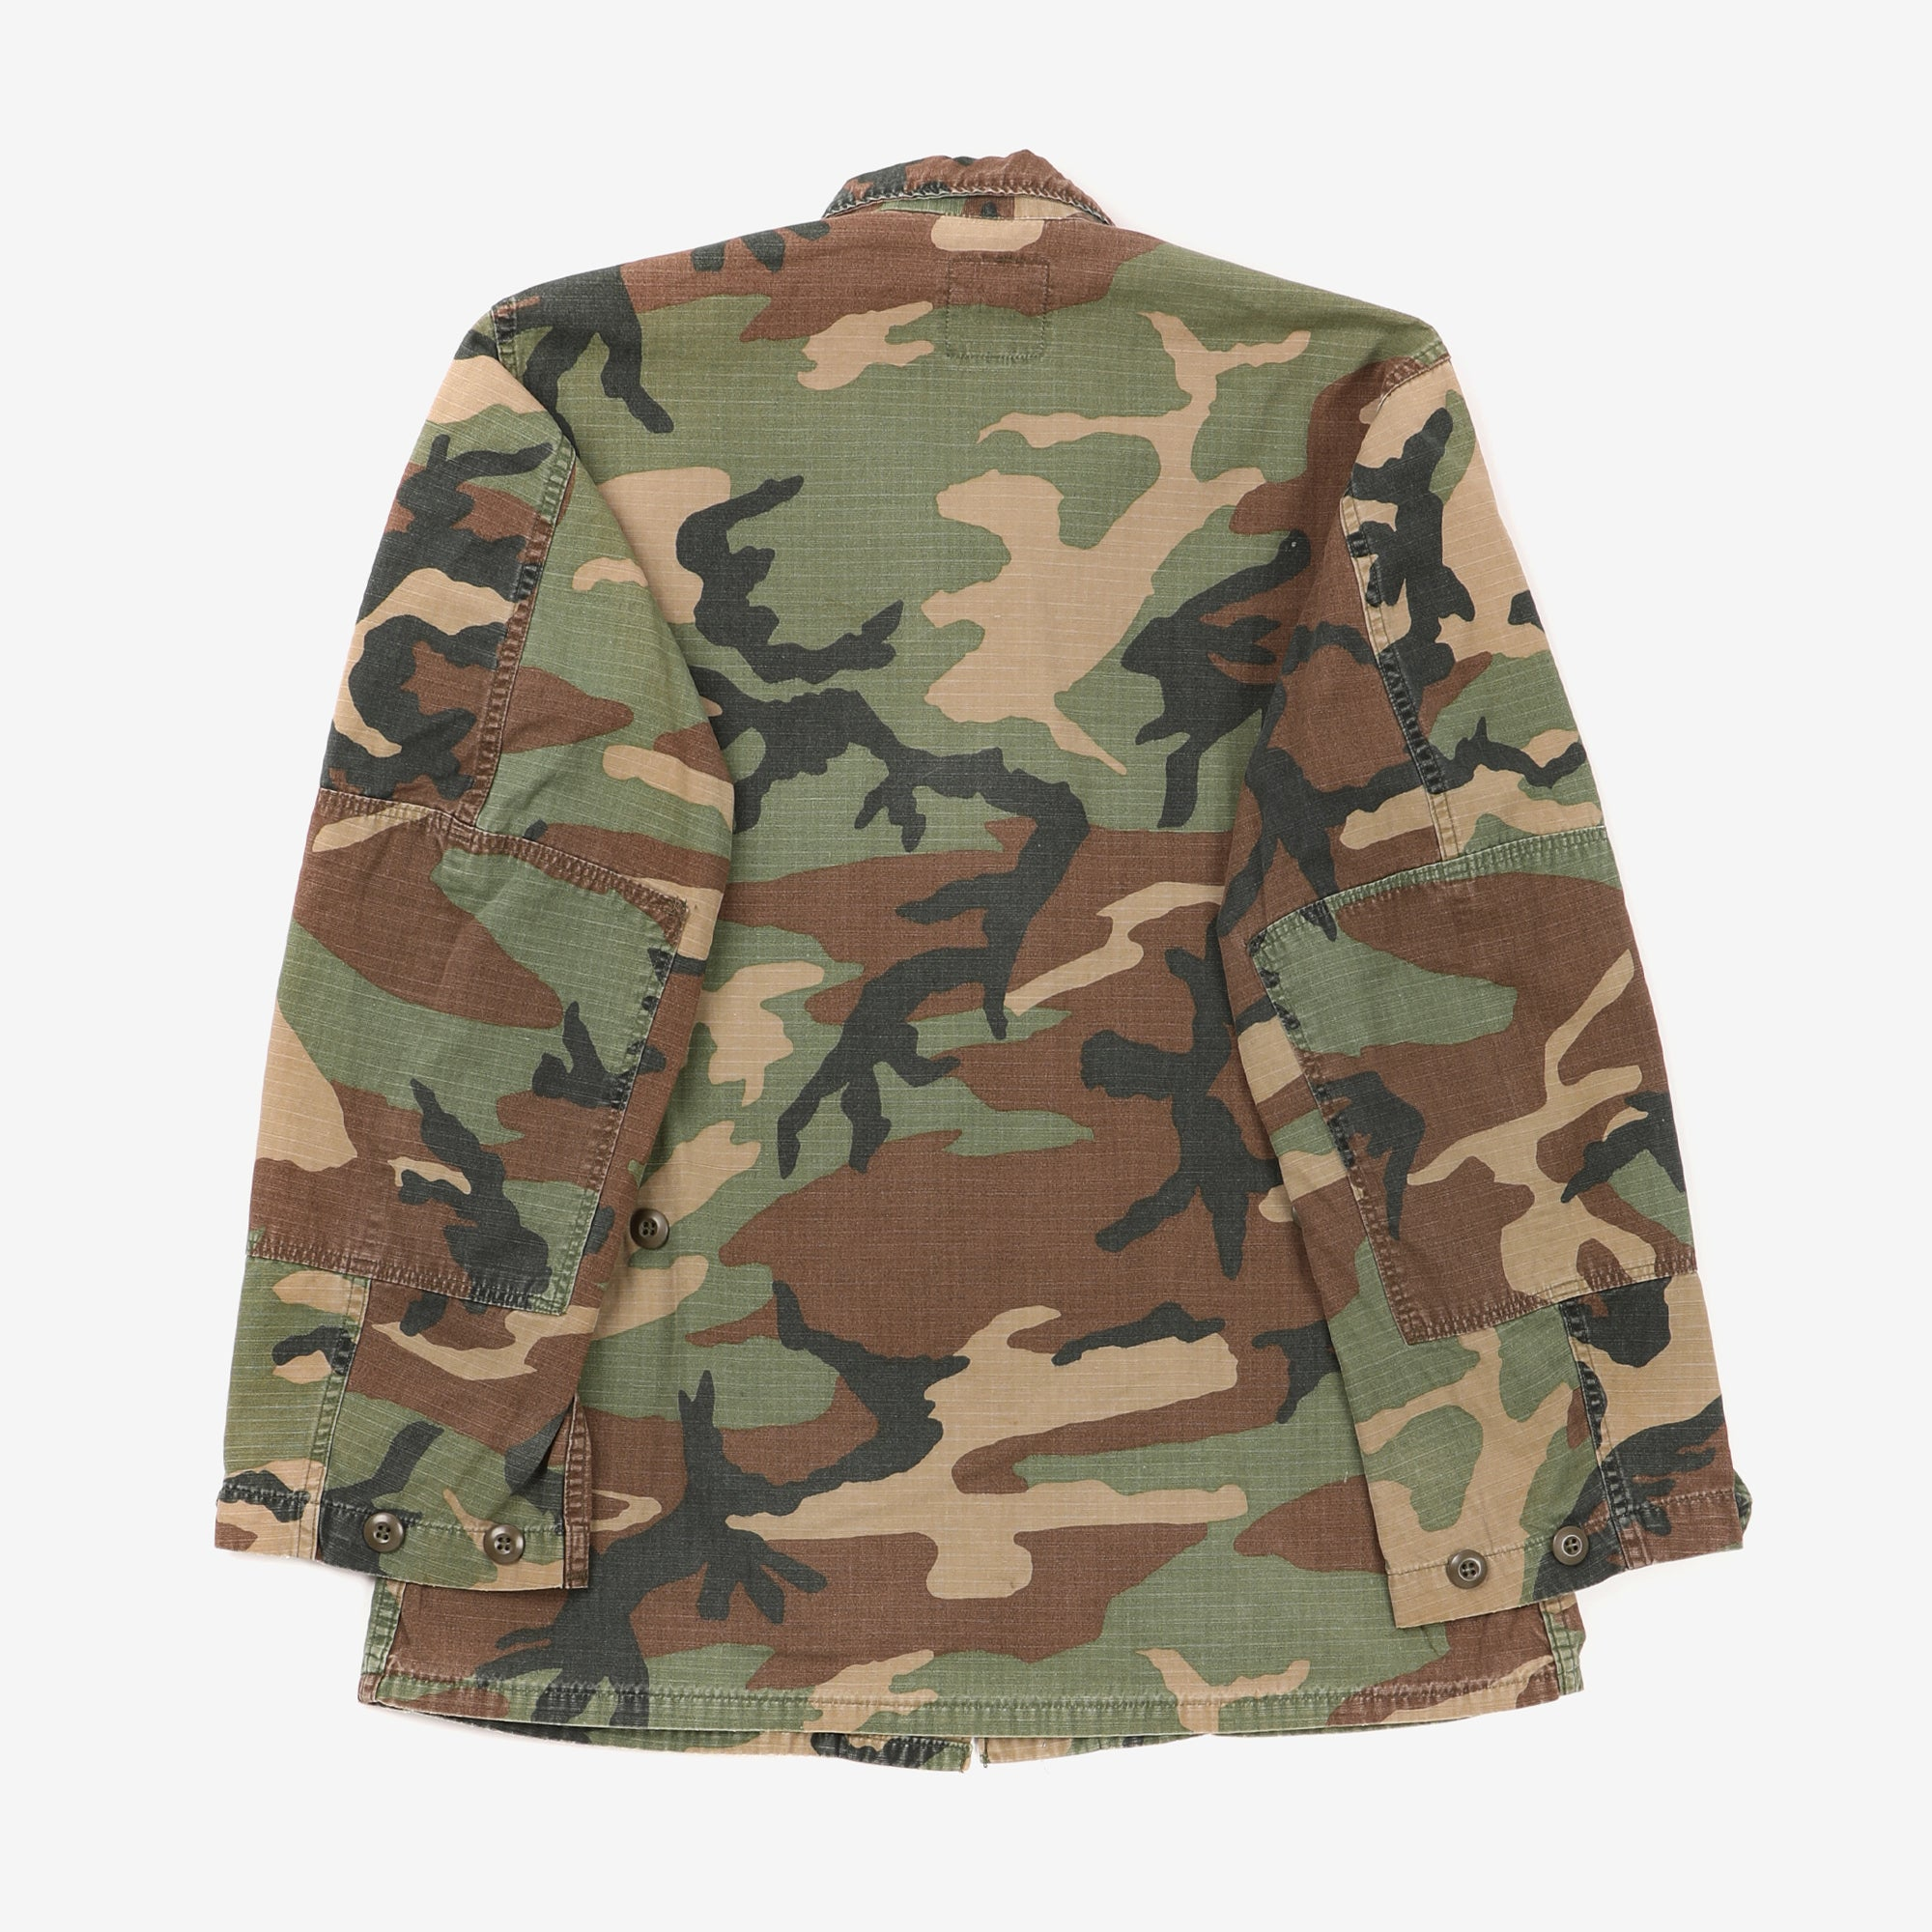 US Army Ripstop Woodland Camo Airborne Jacket